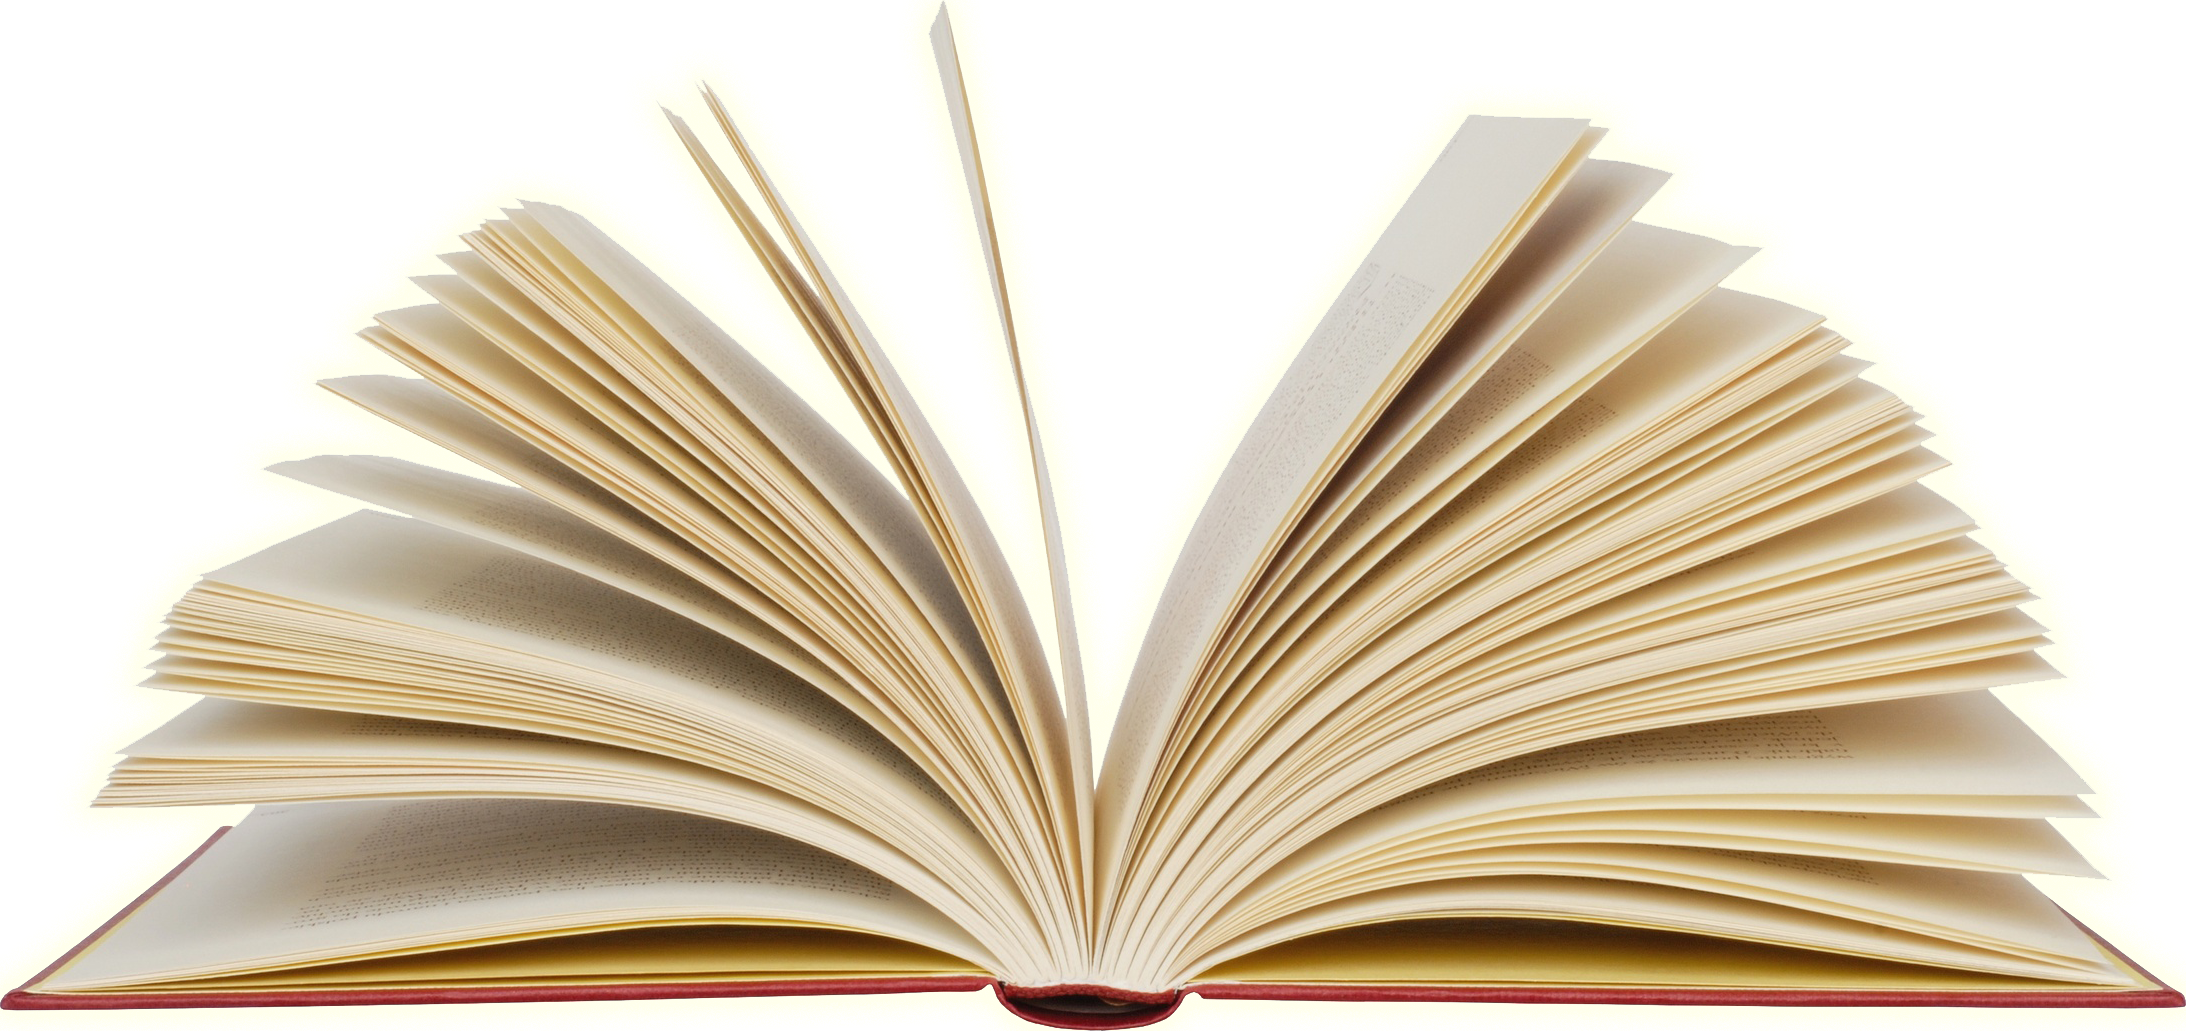 book_PNG2115.png